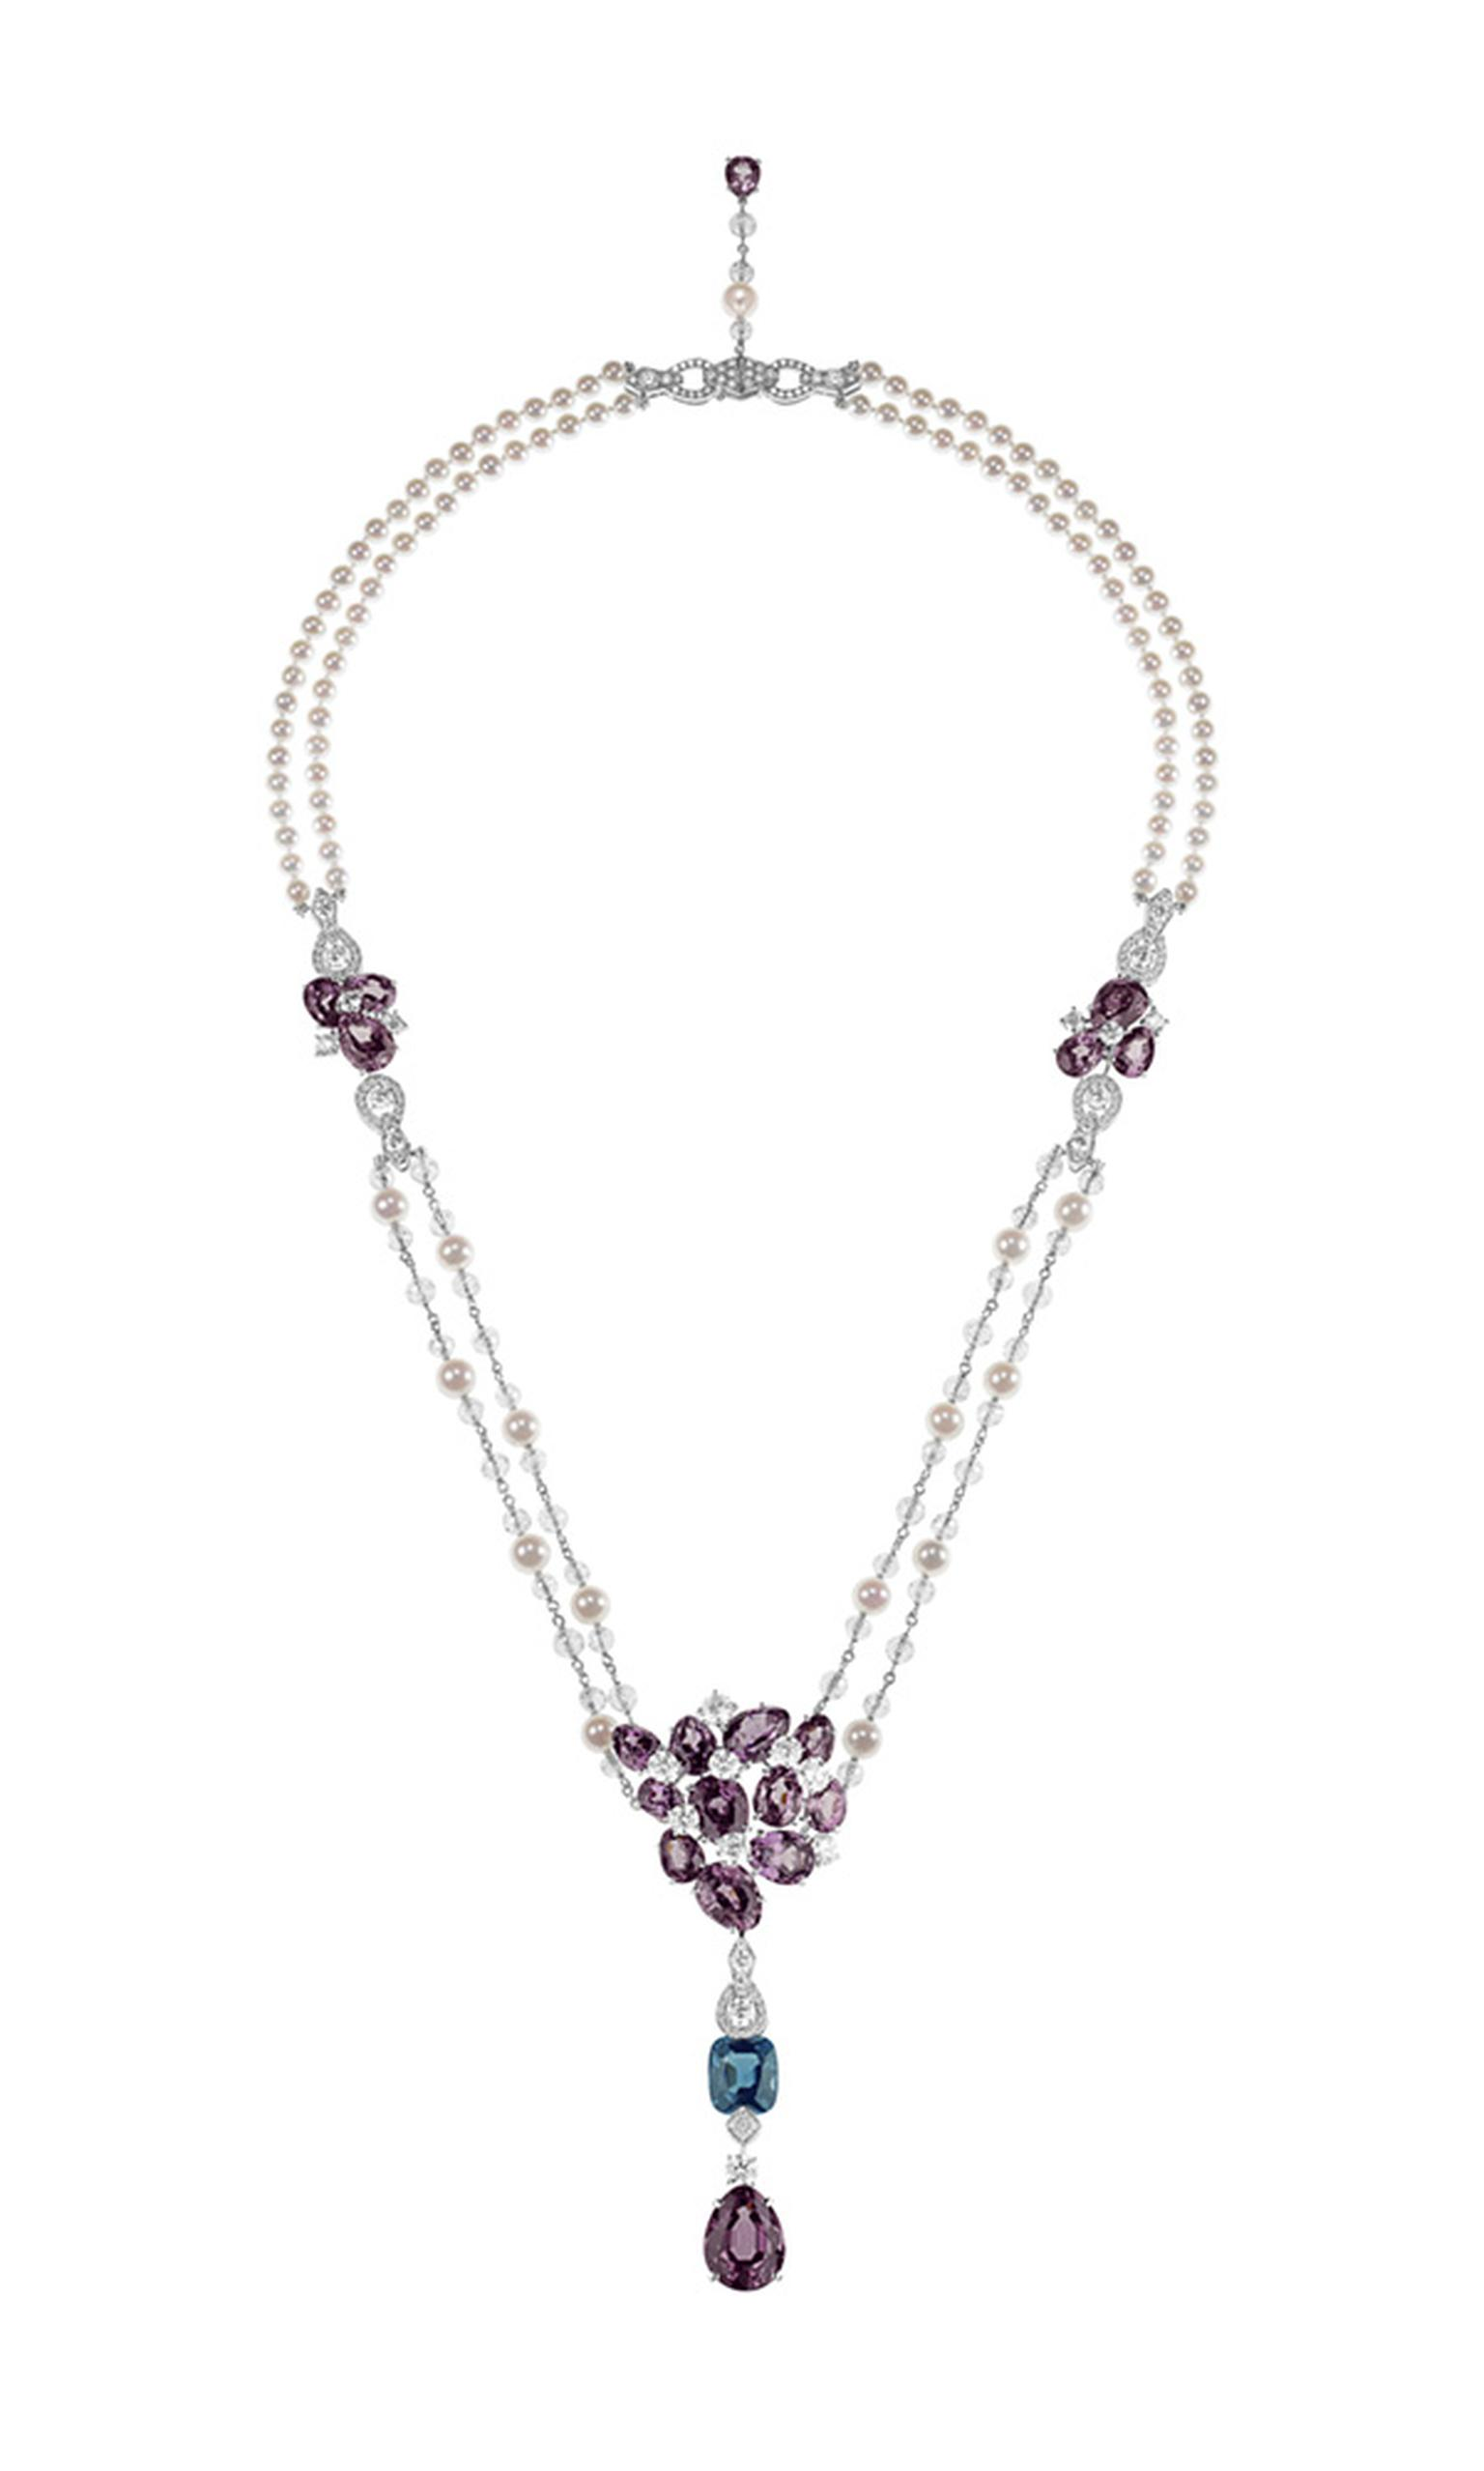 Chaumet-collier_10_photo.jpg